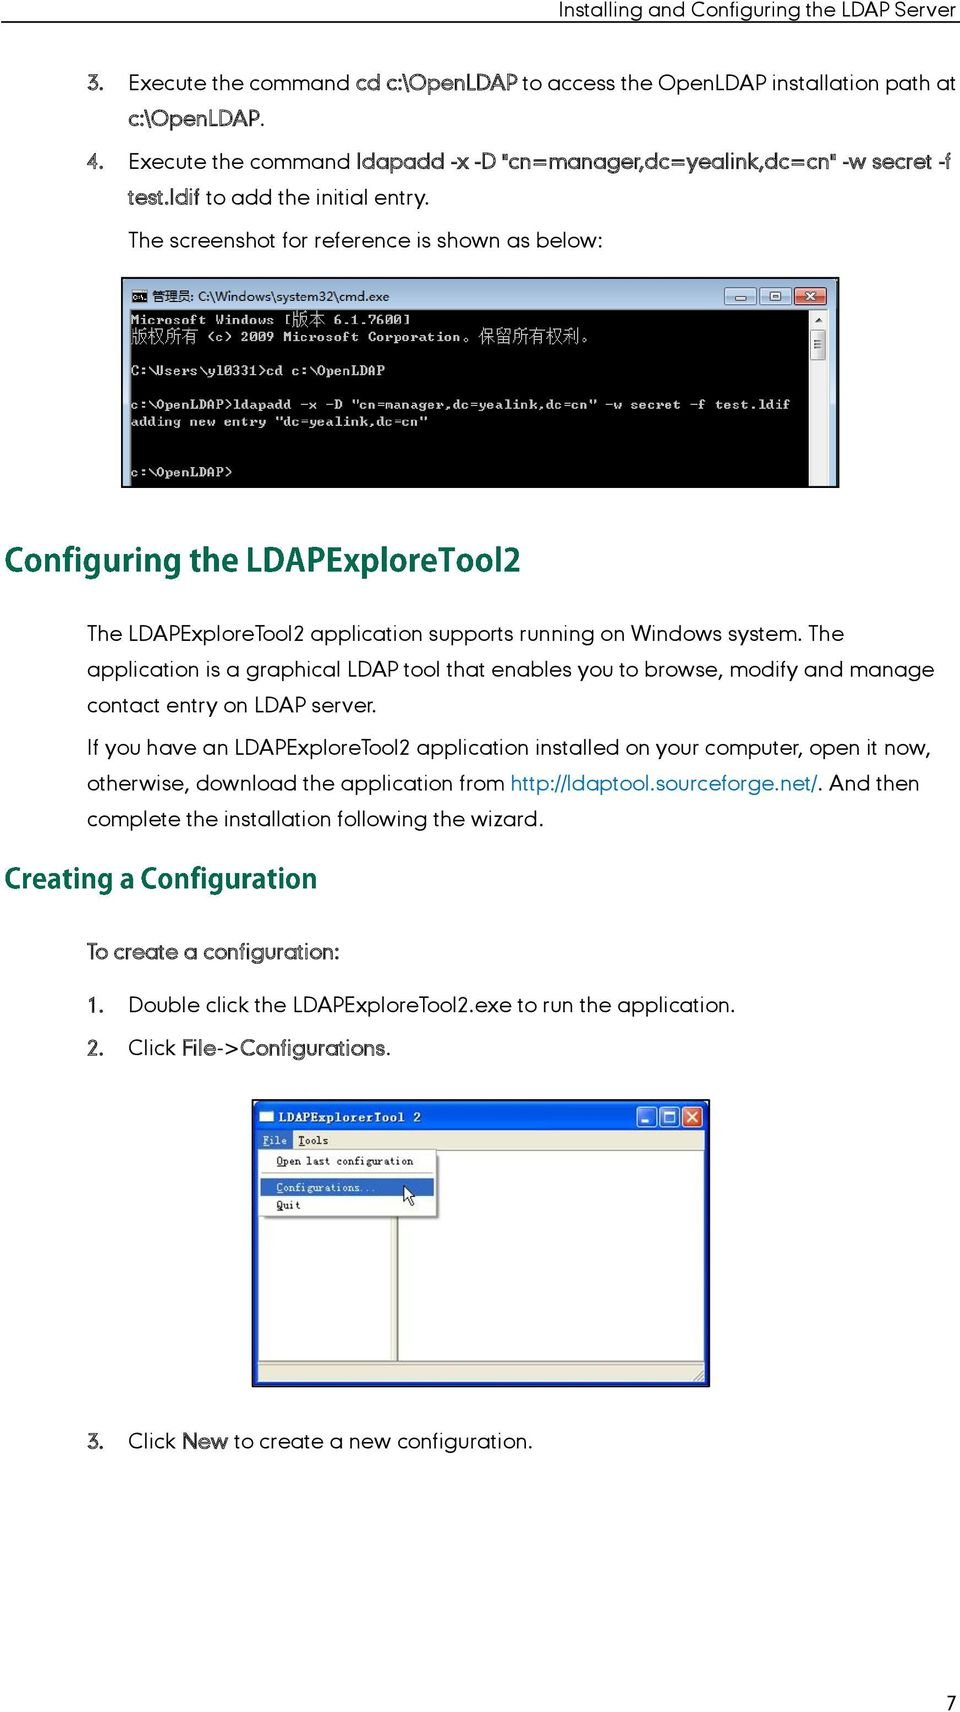 The following gives an overview of LDAP from a user's